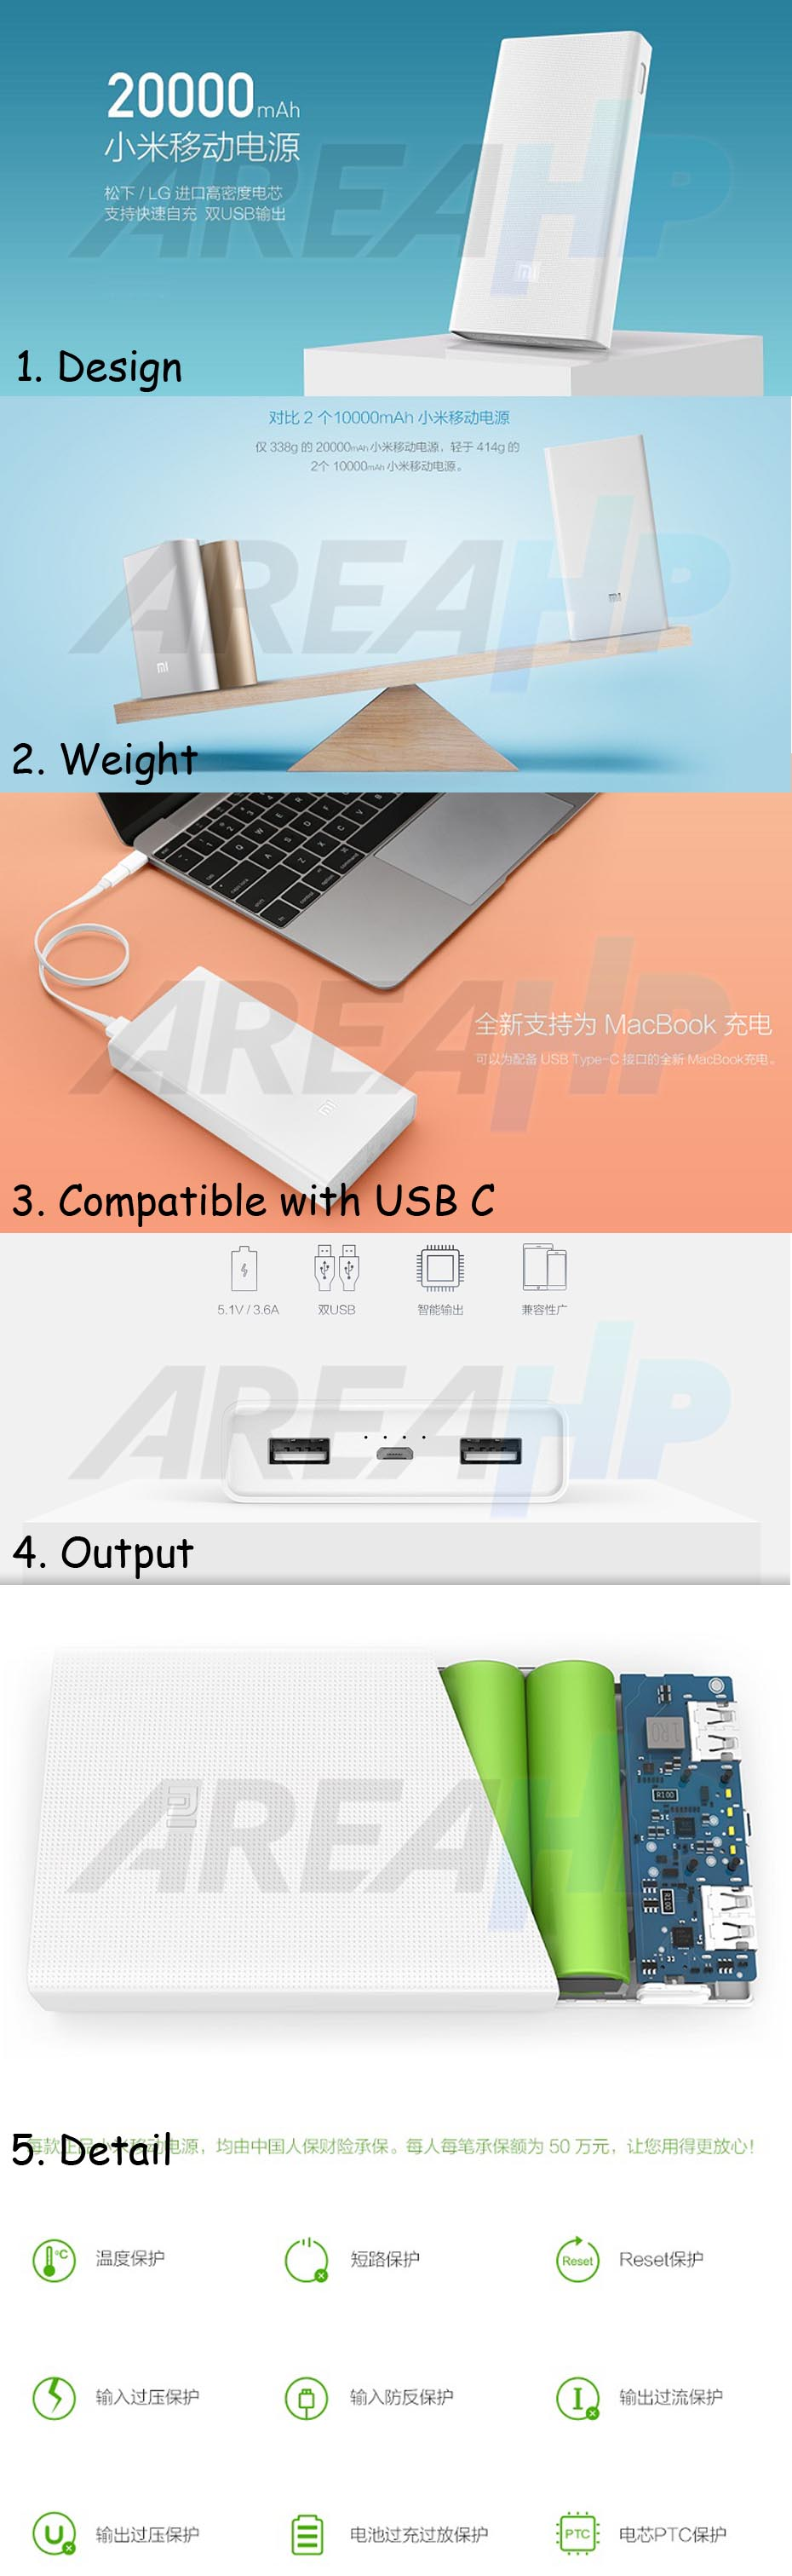 Powerbank Xiaomi 20000mAh (Original)Overview